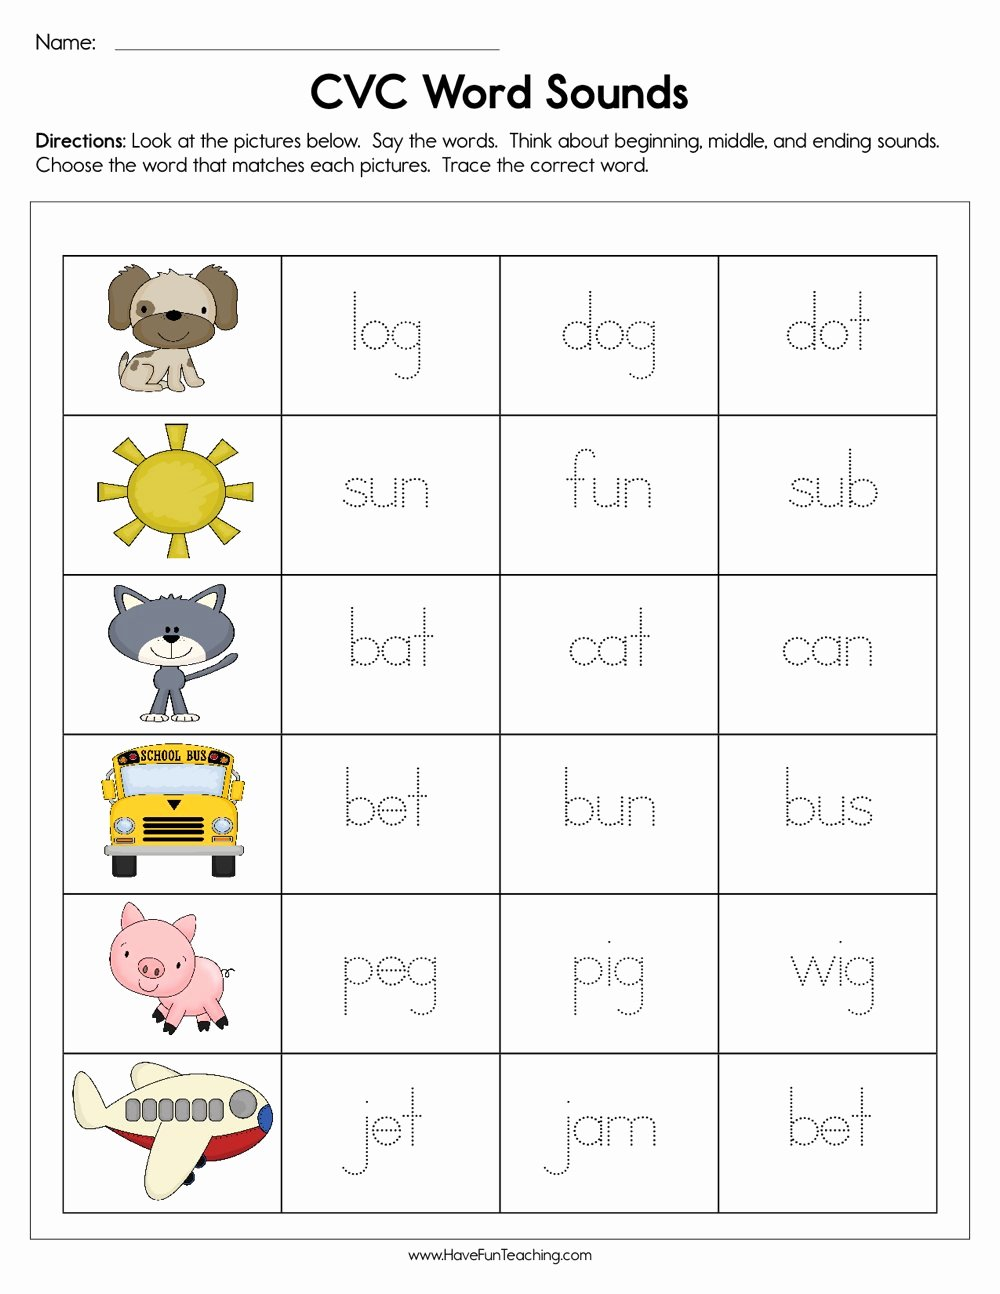 Cvc Words for Kindergarten Worksheets Fresh Worksheet 3rd Grade Math Worksheetsree Printable